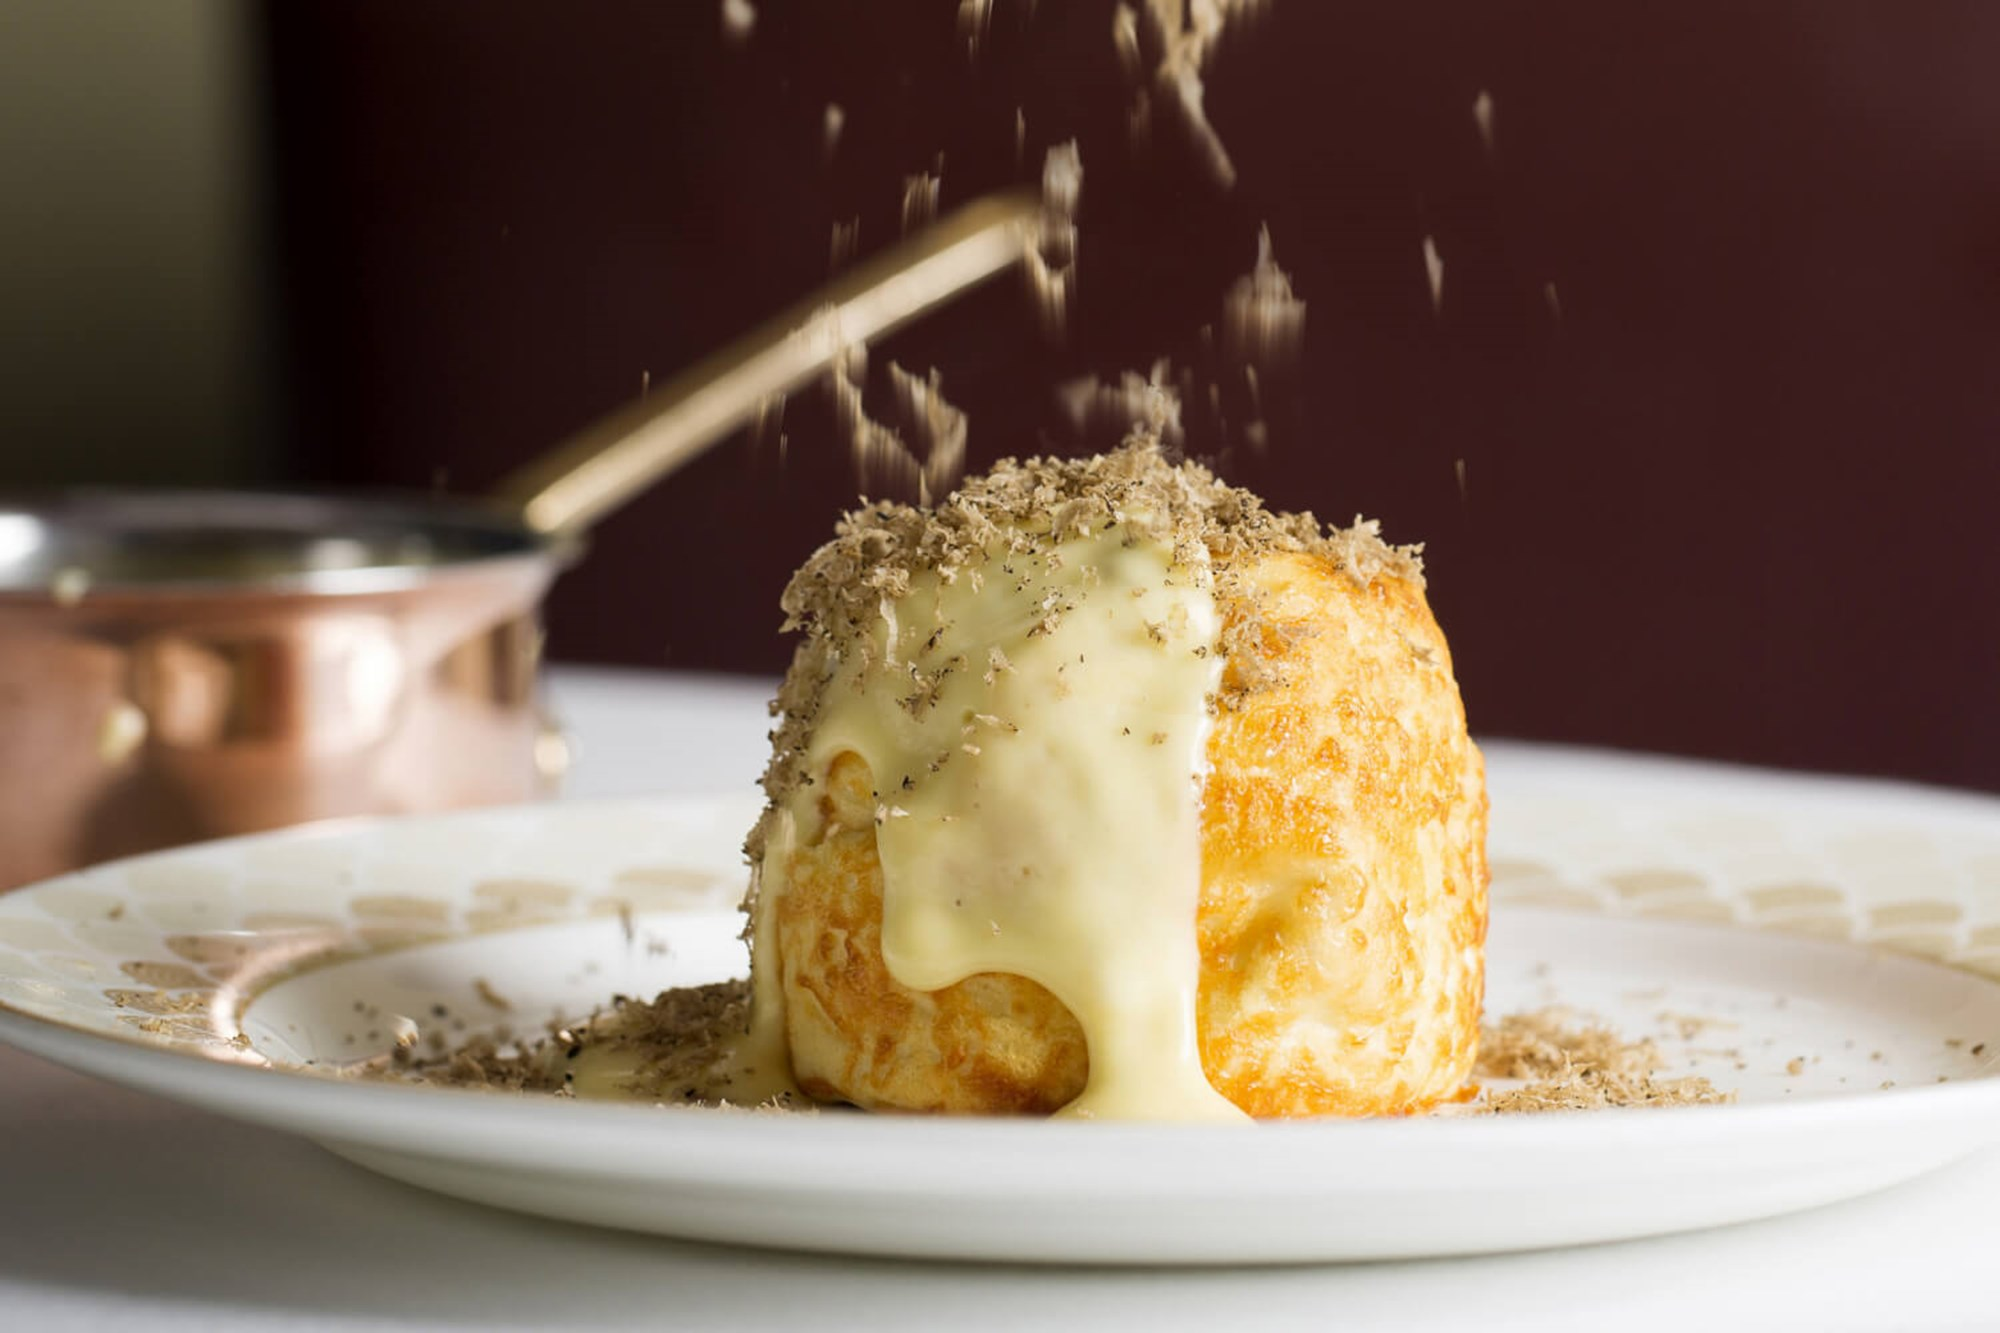 Dinner at Scott's in Mayfair, Scott's Twice baked Keen's cheddar soufflé with black truffle